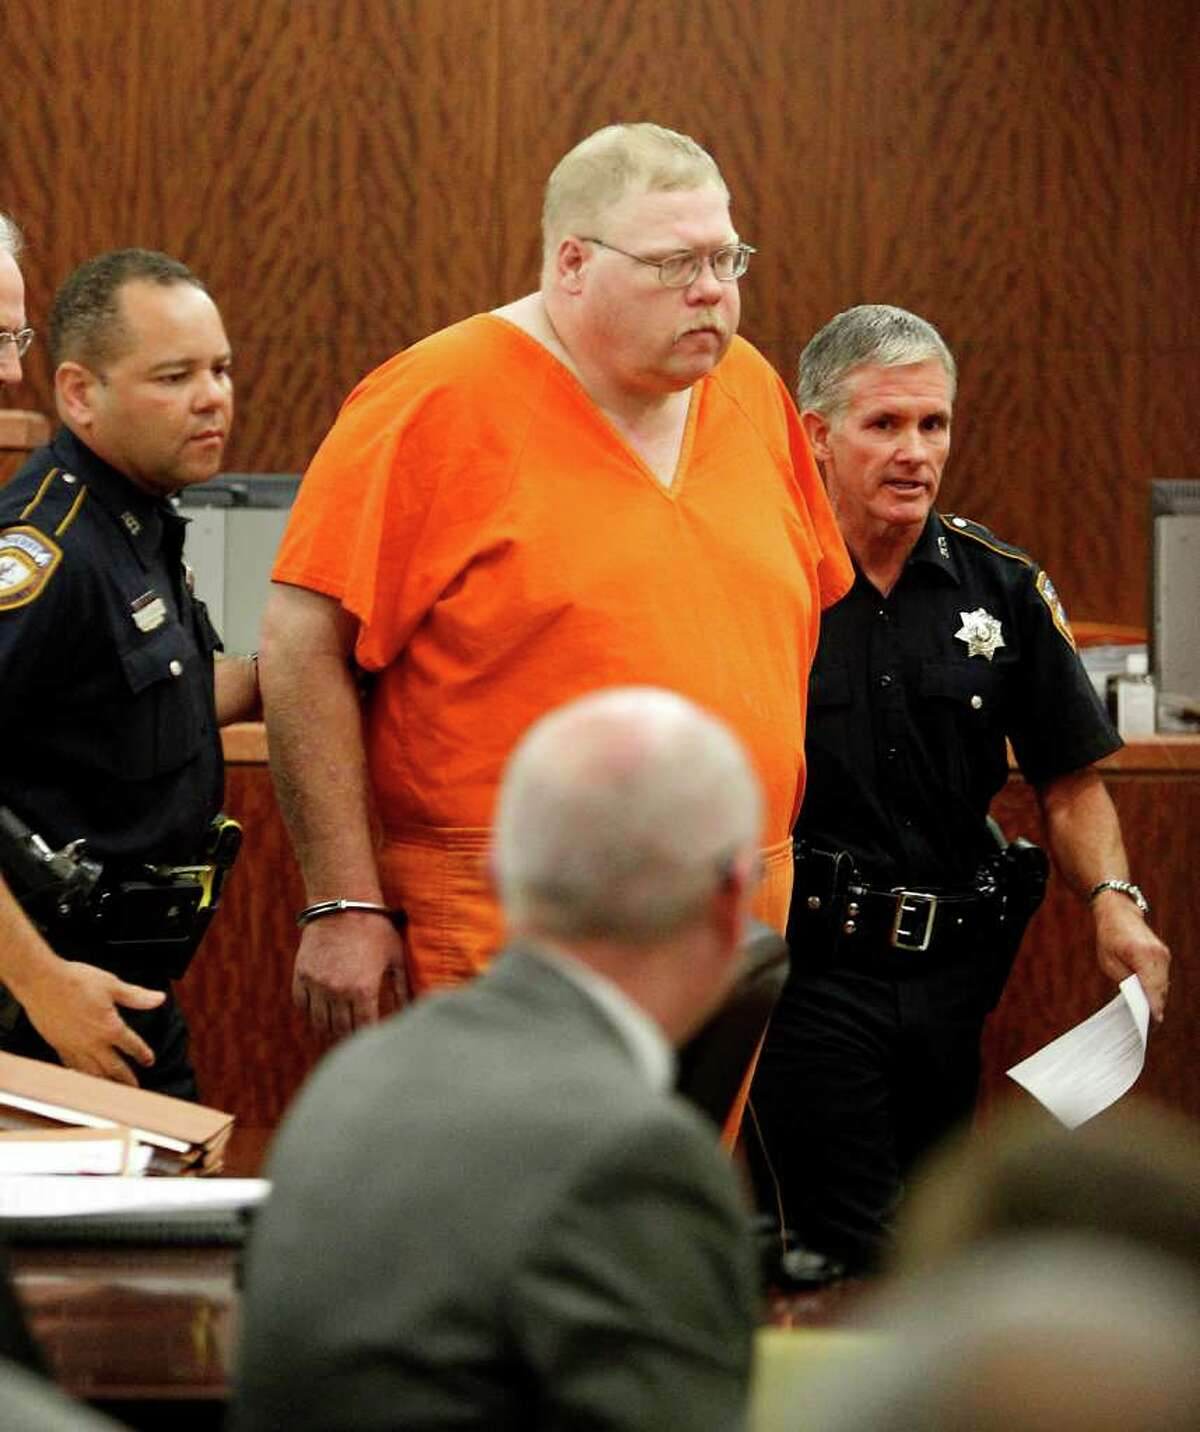 Steven Alexander Hobbs, 40 of Crosby is lead away from the bench in court at the Harris County Criminal Courthouse, Wednesday, Oct. 19, 2011. Hobbs was accused of attacking prostitutes has been charged with capital murder after DNA evidence allegedly linked him to a 2010 killing. ( Karen Warren / Houston Chronicle )